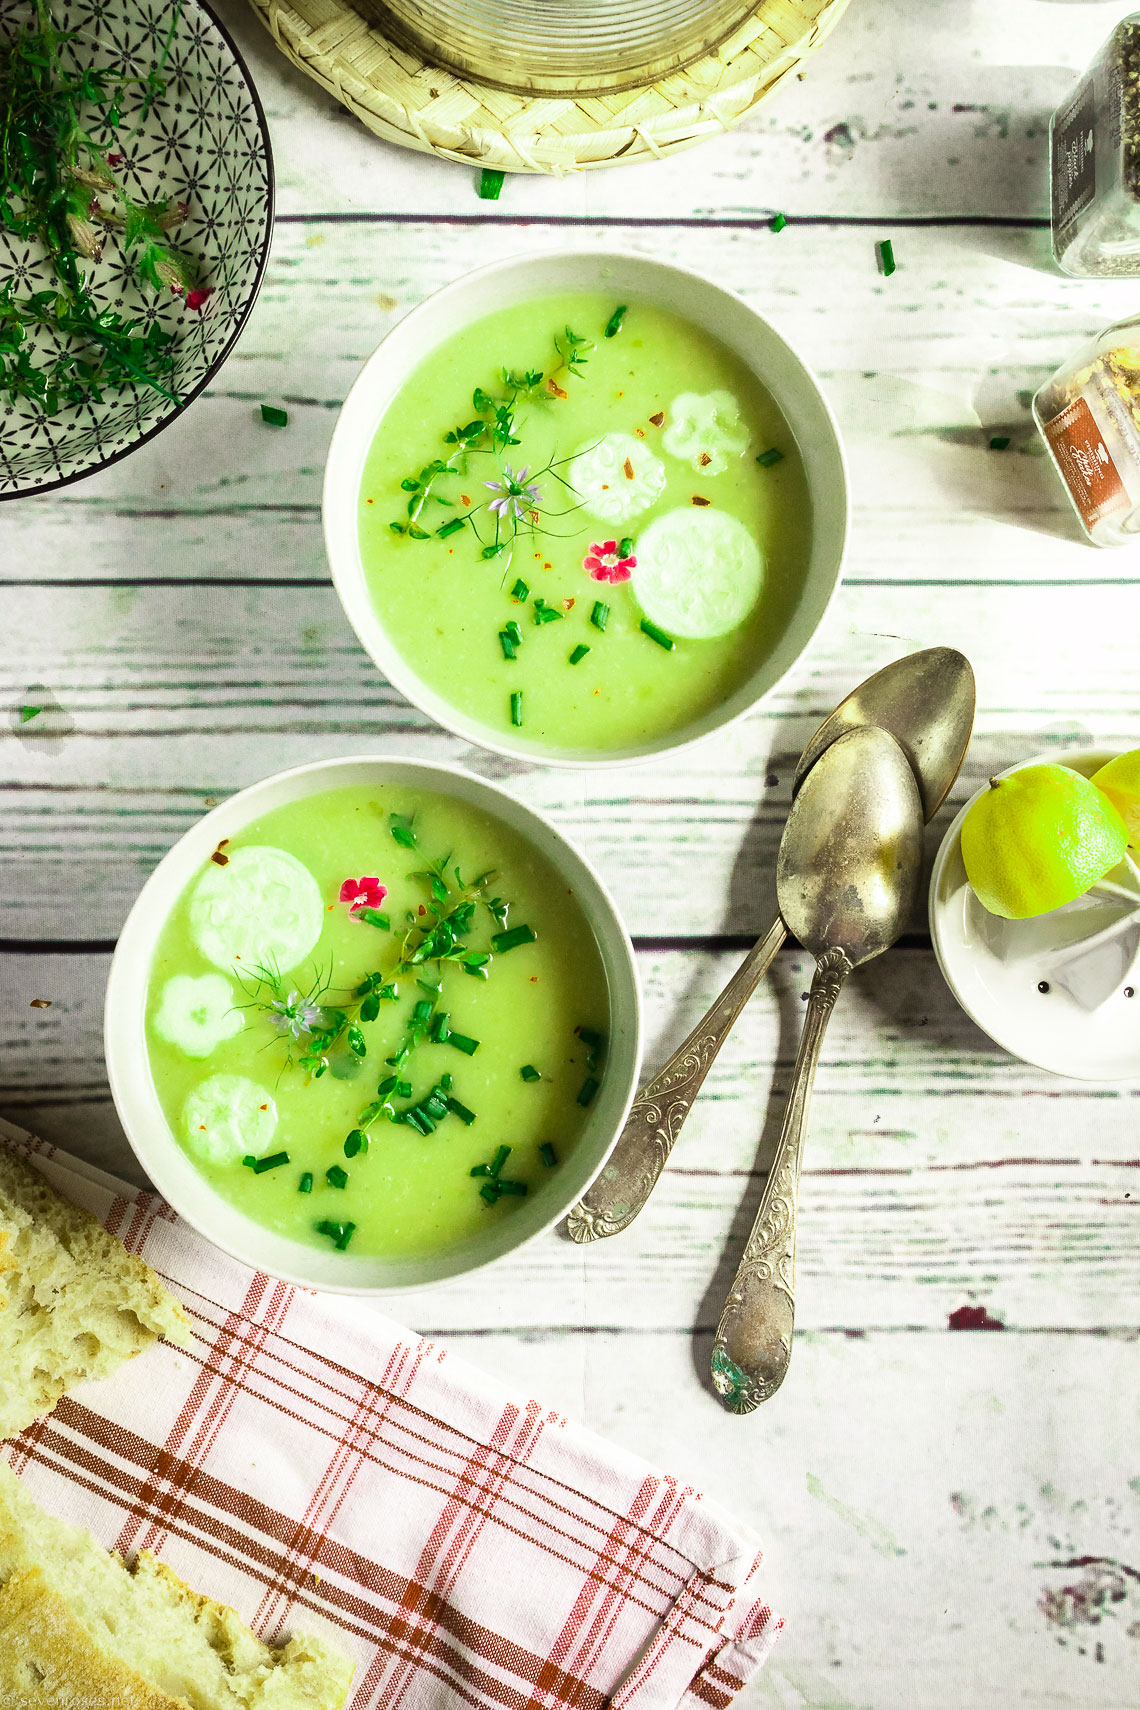 It's so hot! This refreshing summer zucchini soup is all you'll want to eat.